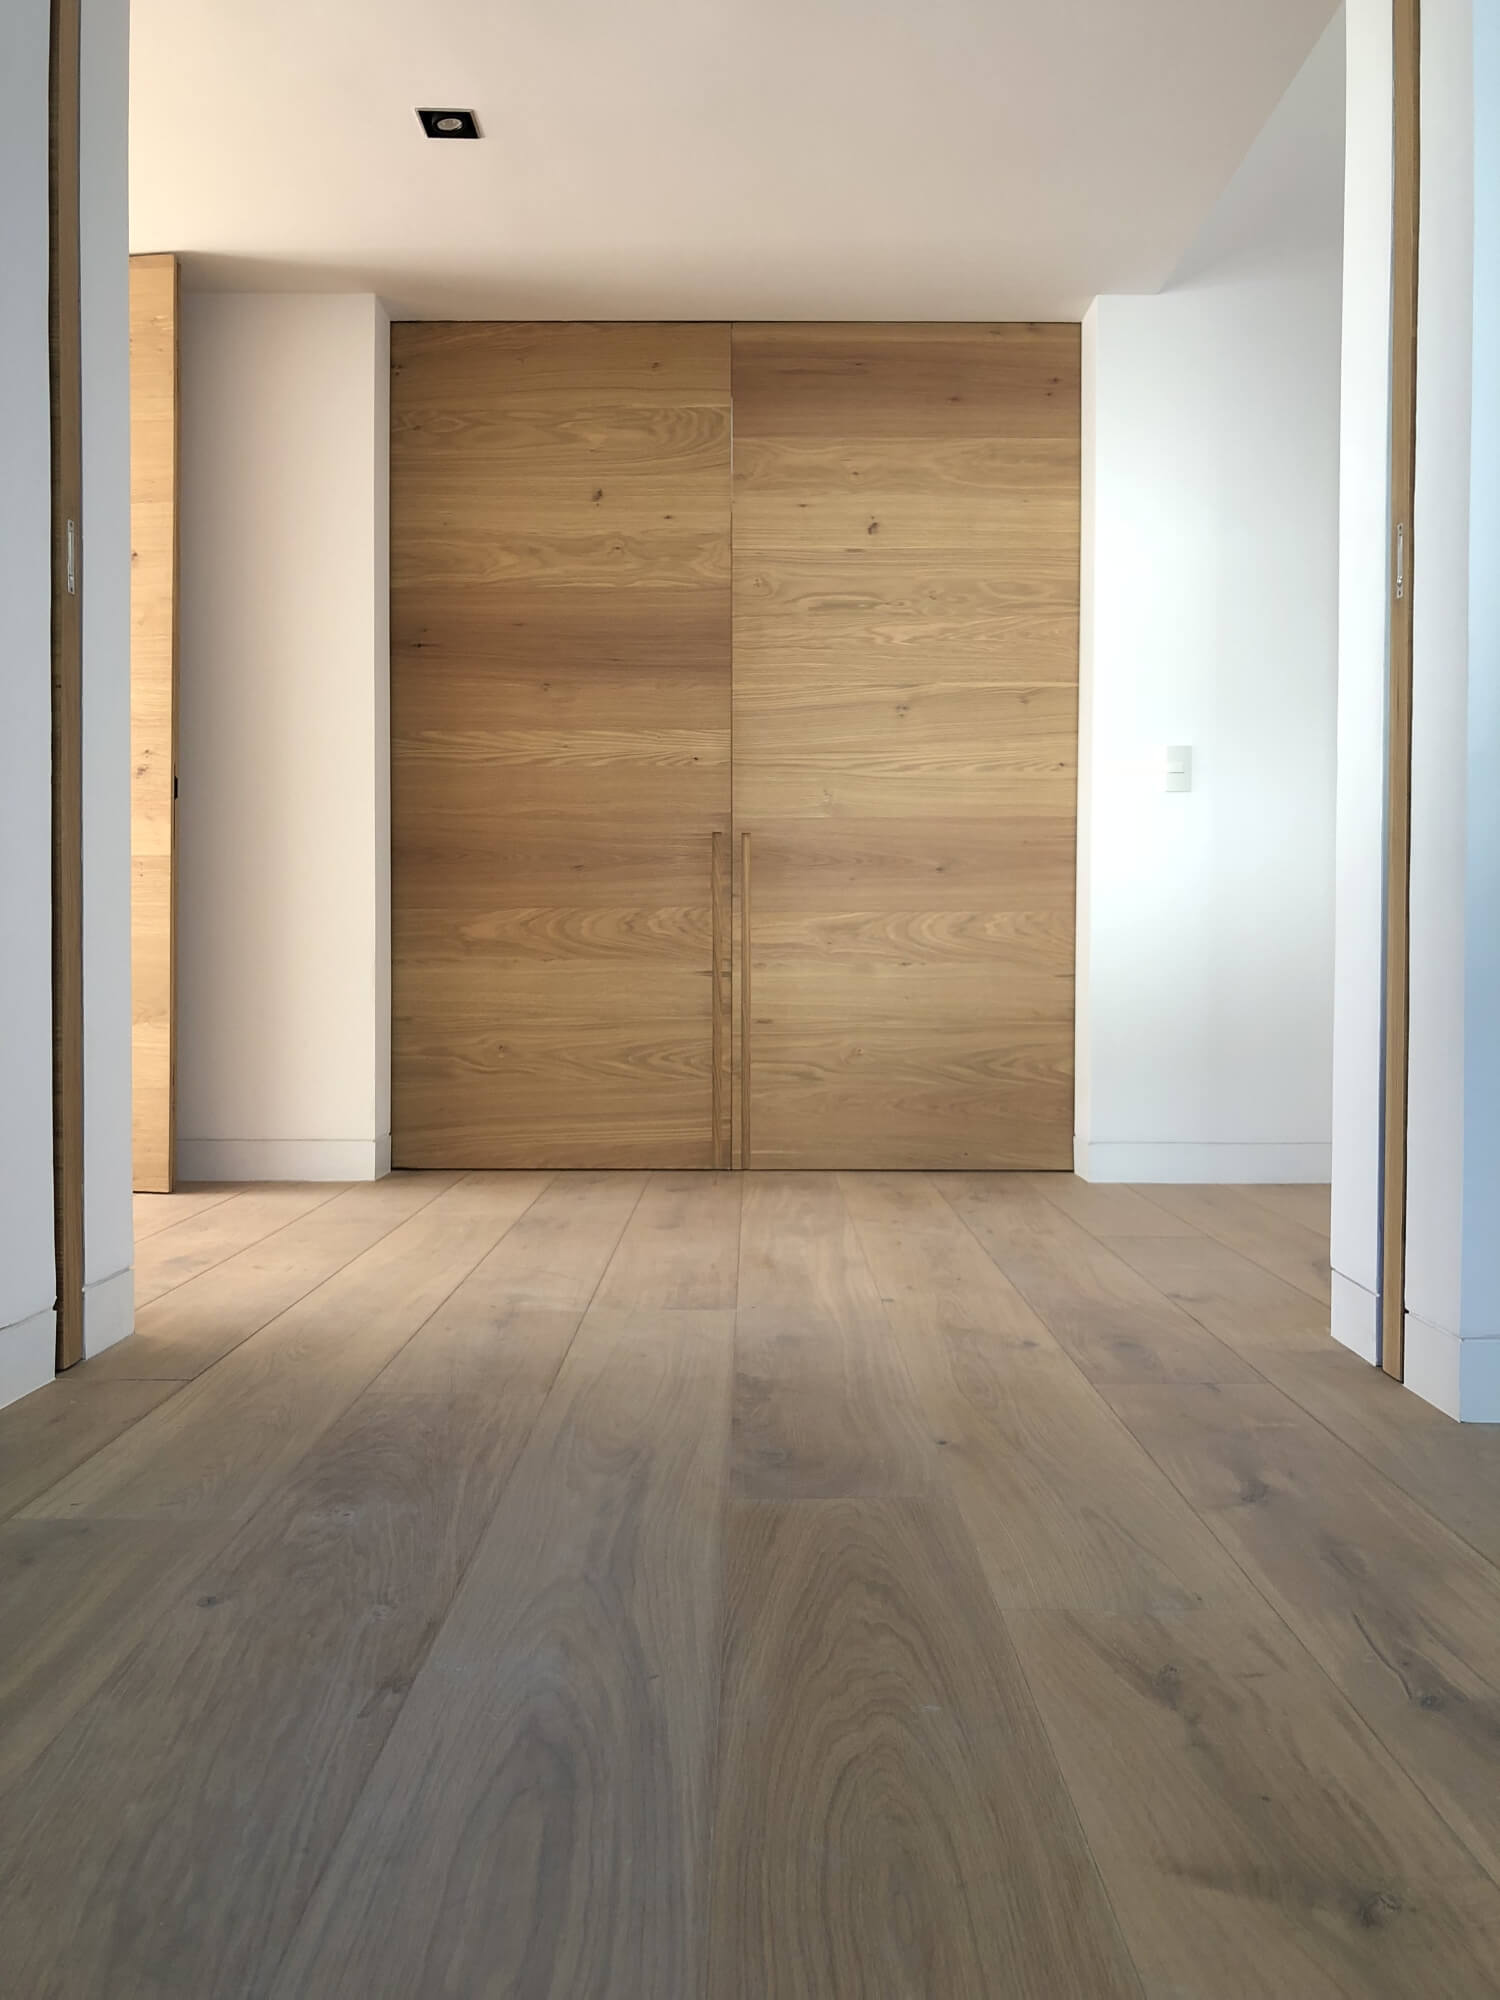 Wide plank oak flooring with white walls and natural color oak barn doors.